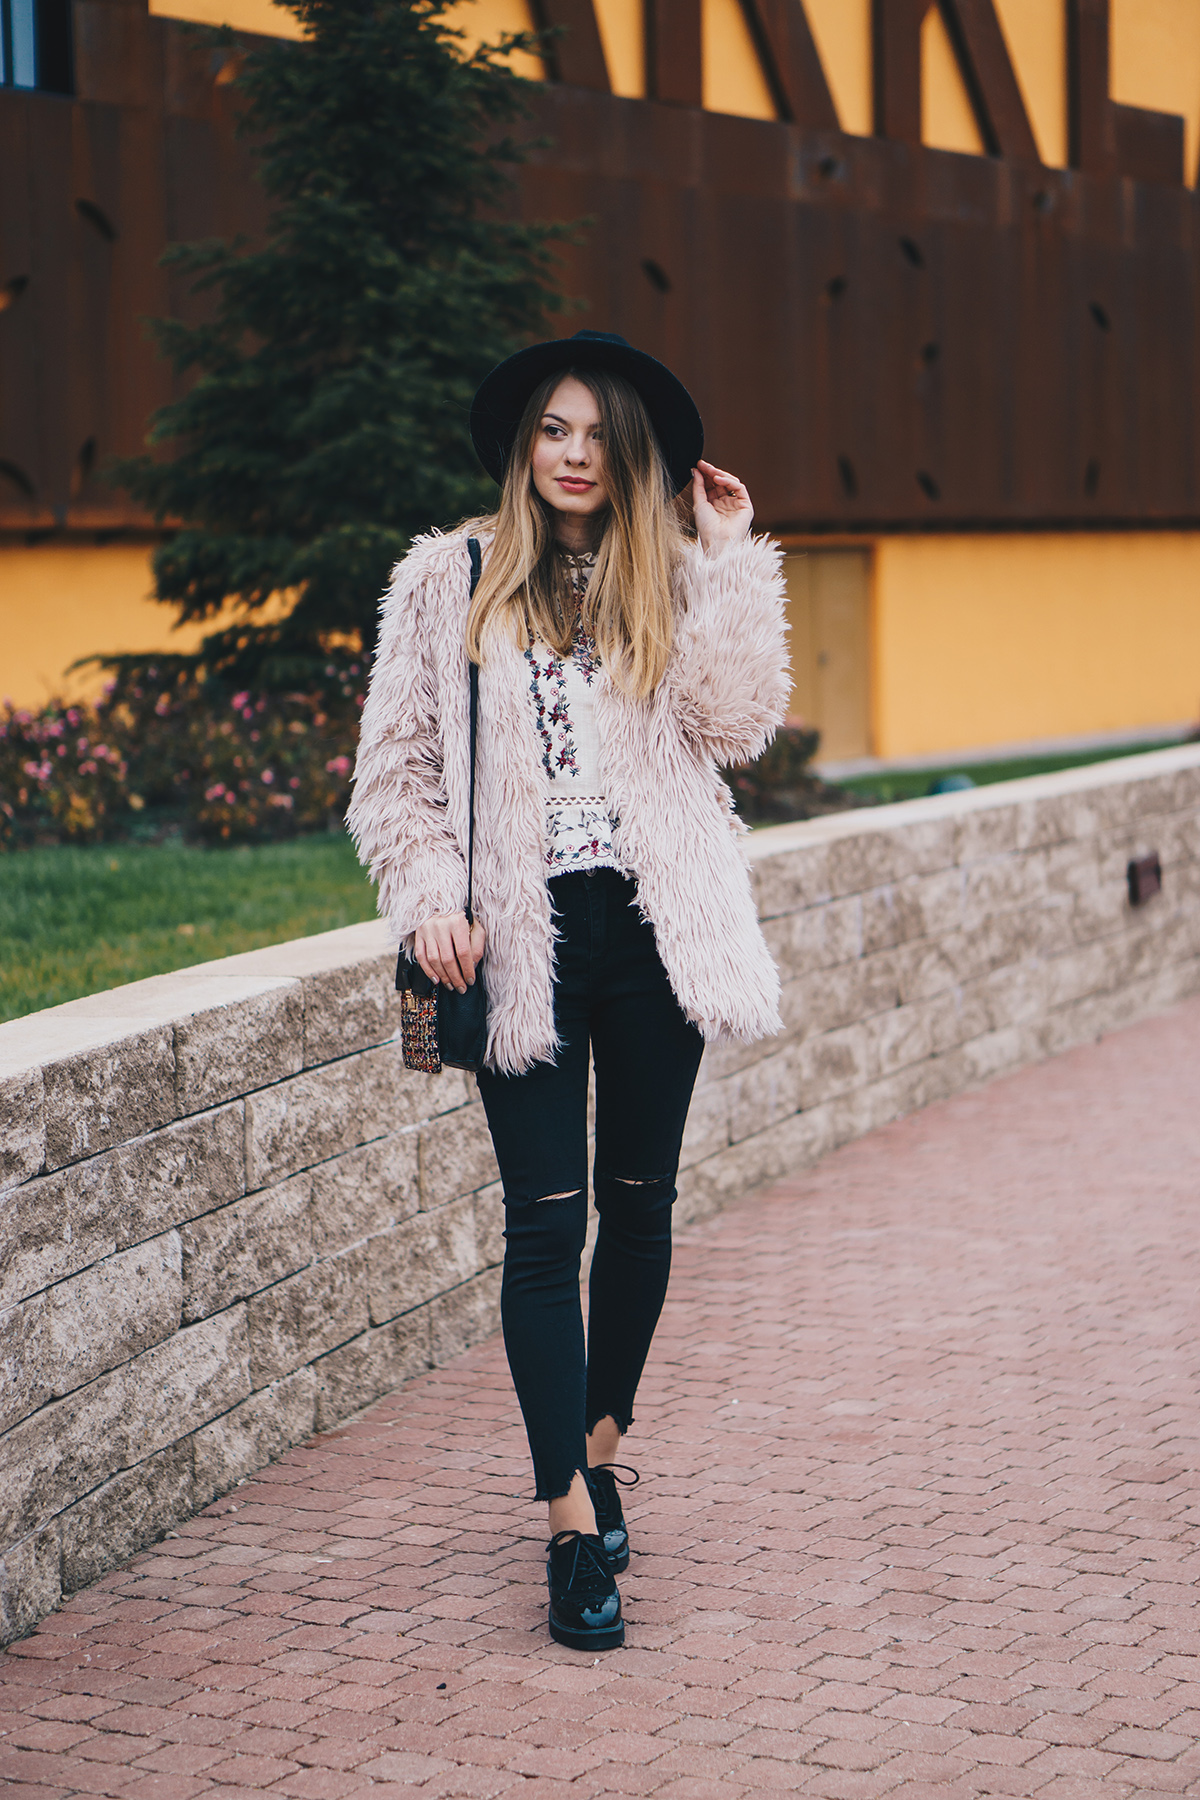 floral-embroidered-blouse-pink-fur-coat-ripped-black-jeans-brogues-winter-outfit-2